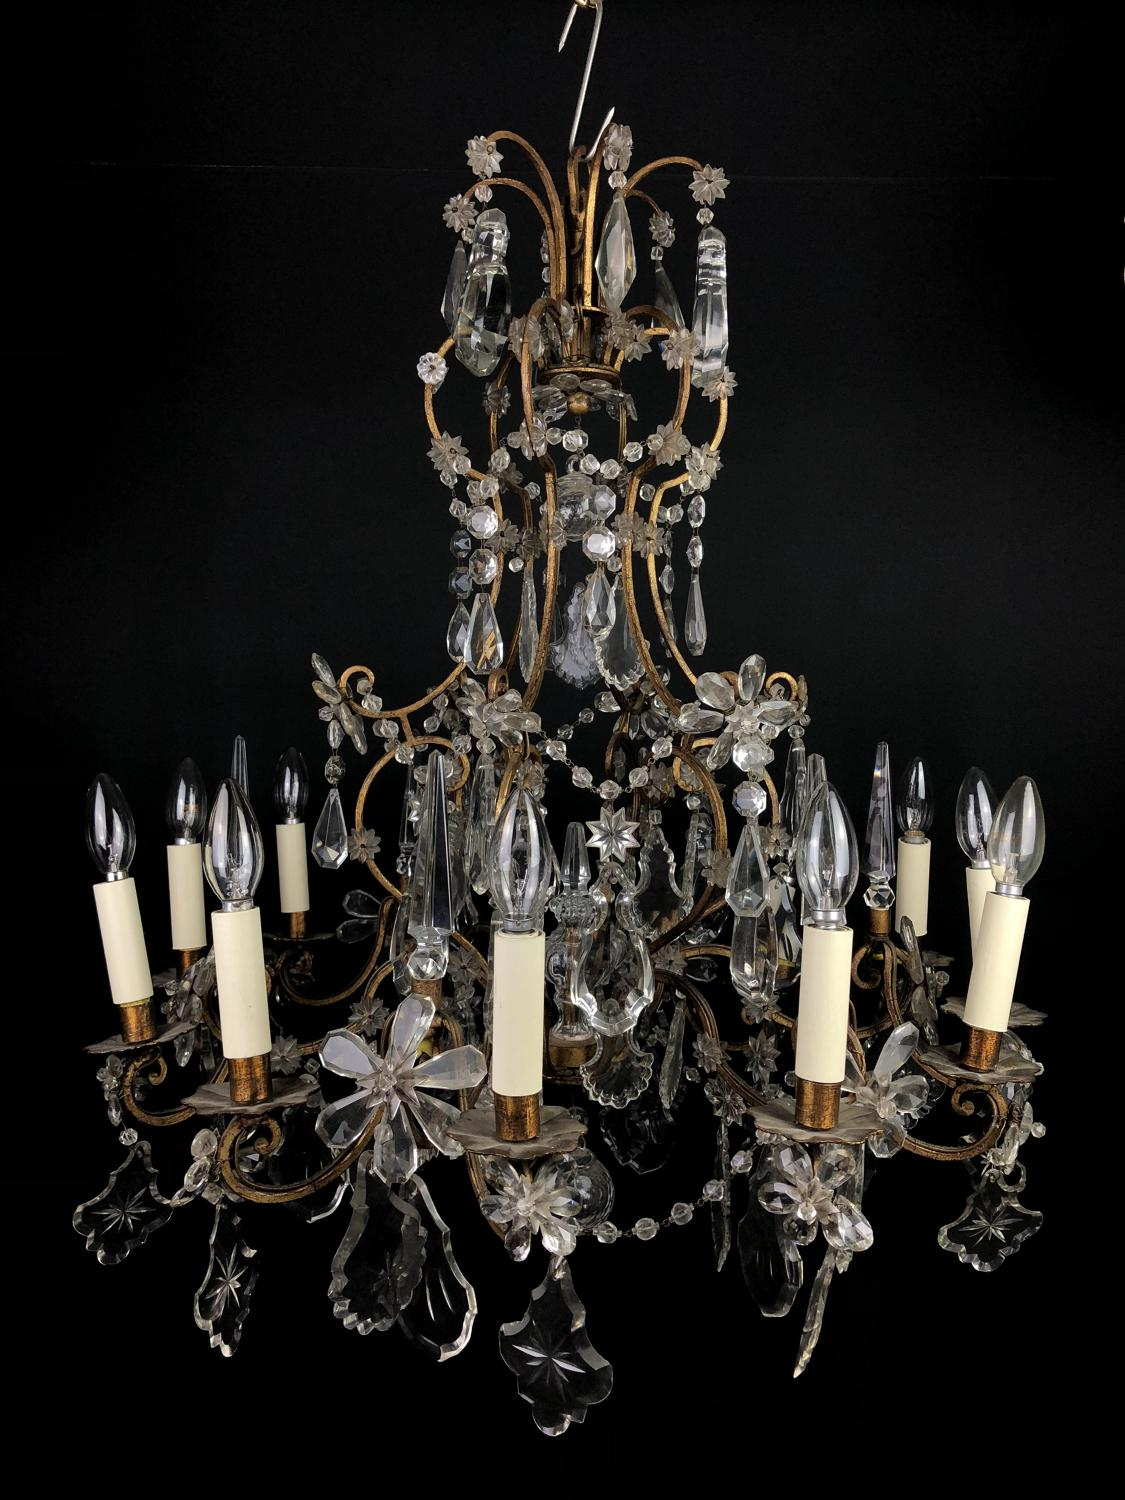 A 12 light Genoese style chandelier